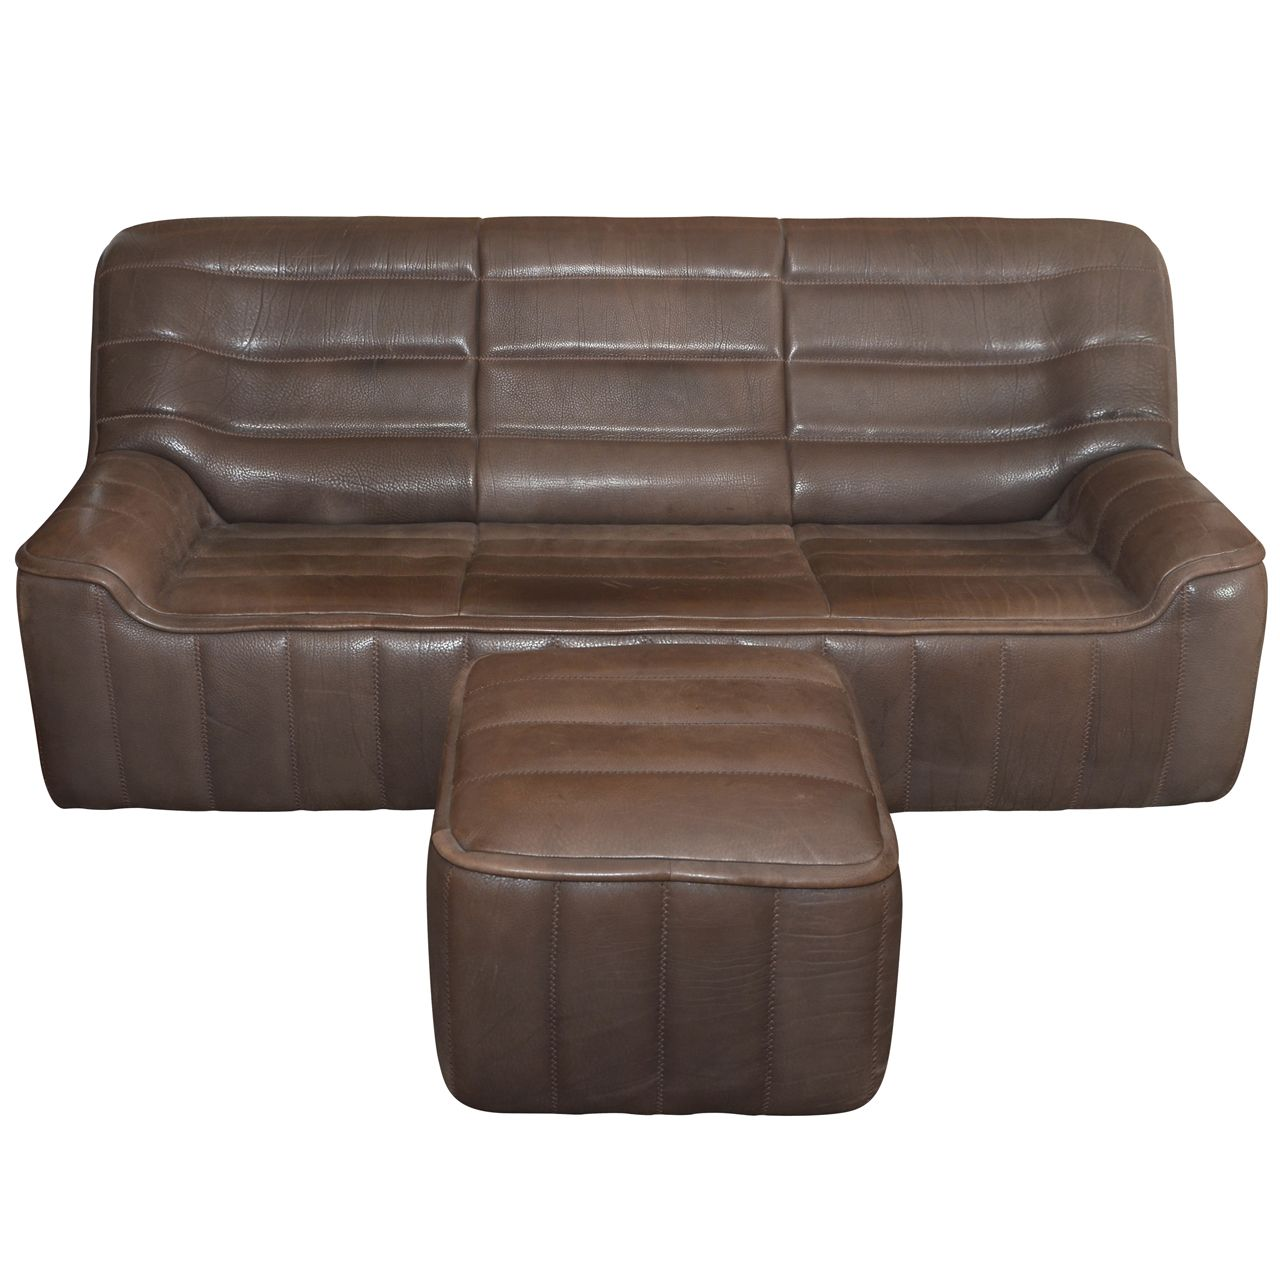 mostly sofas extra wide sectional sofa 1970s and ottoman model quotds 84 quot by de sede 20th c